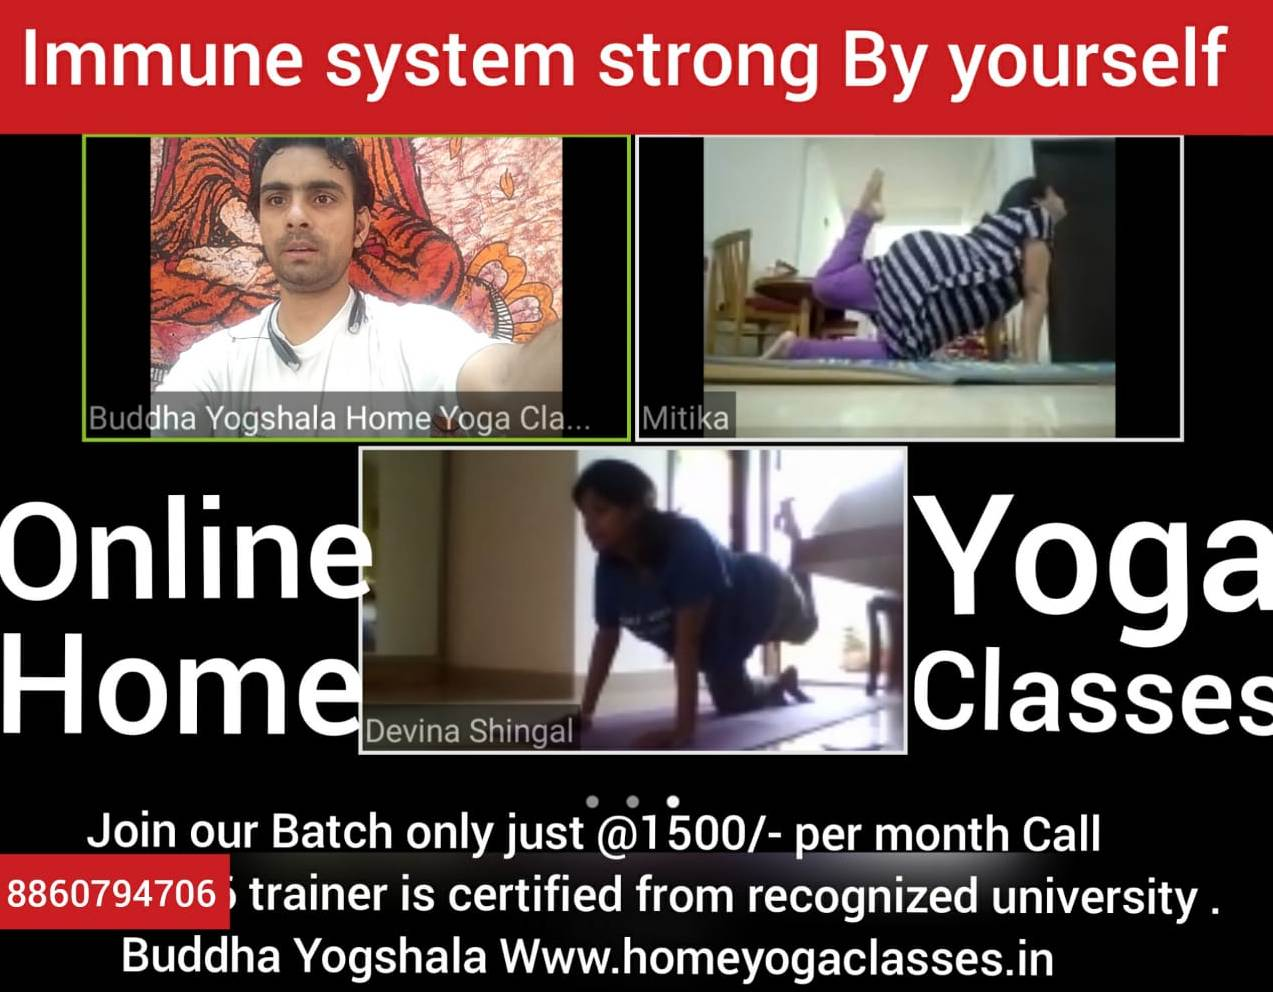 Yoga classes at Home